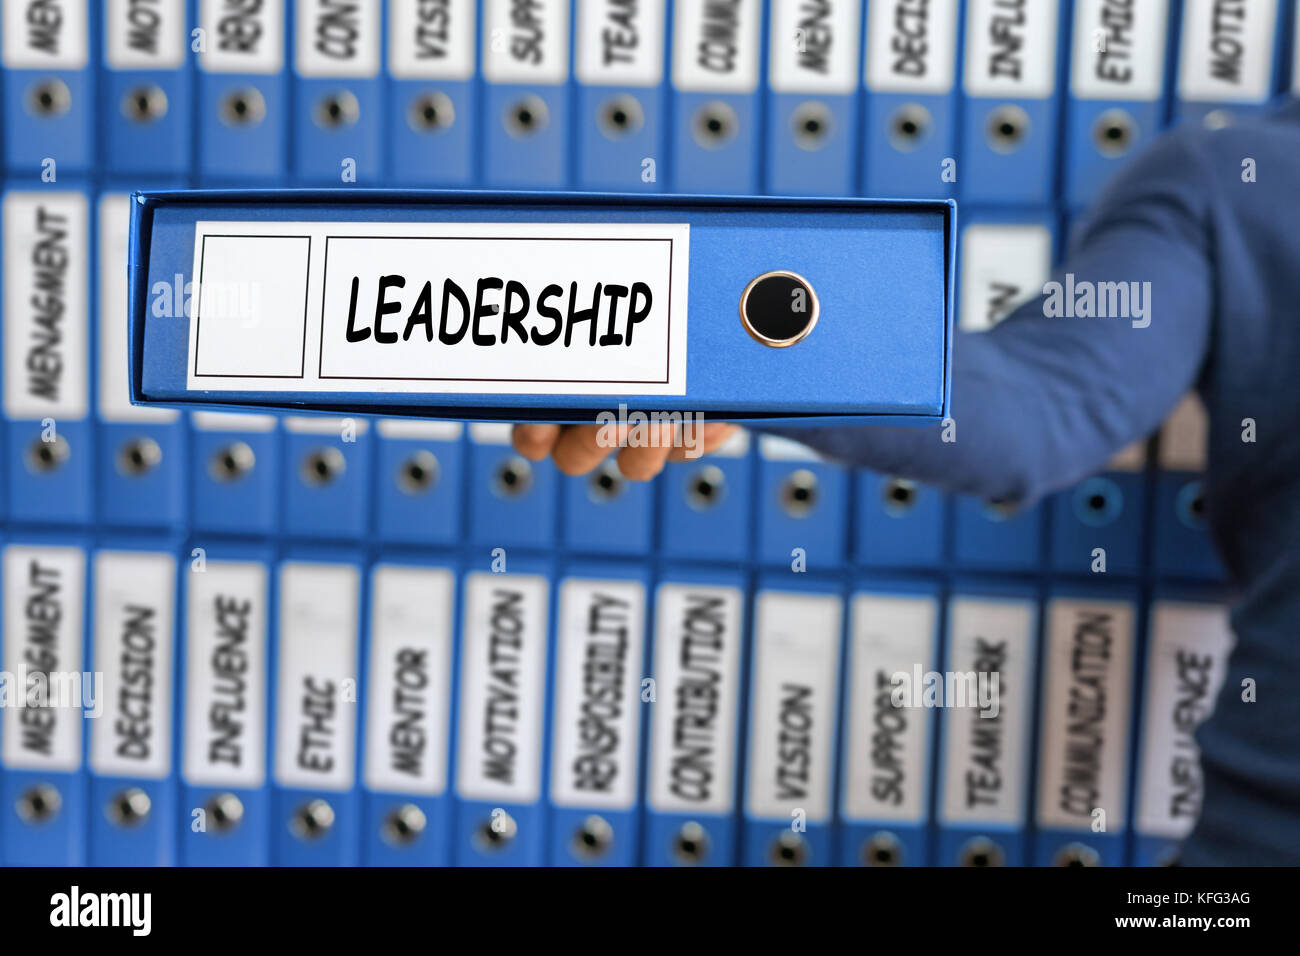 Leadership concept. Leadership skill concept. Young man holding ring binder. - Stock Image